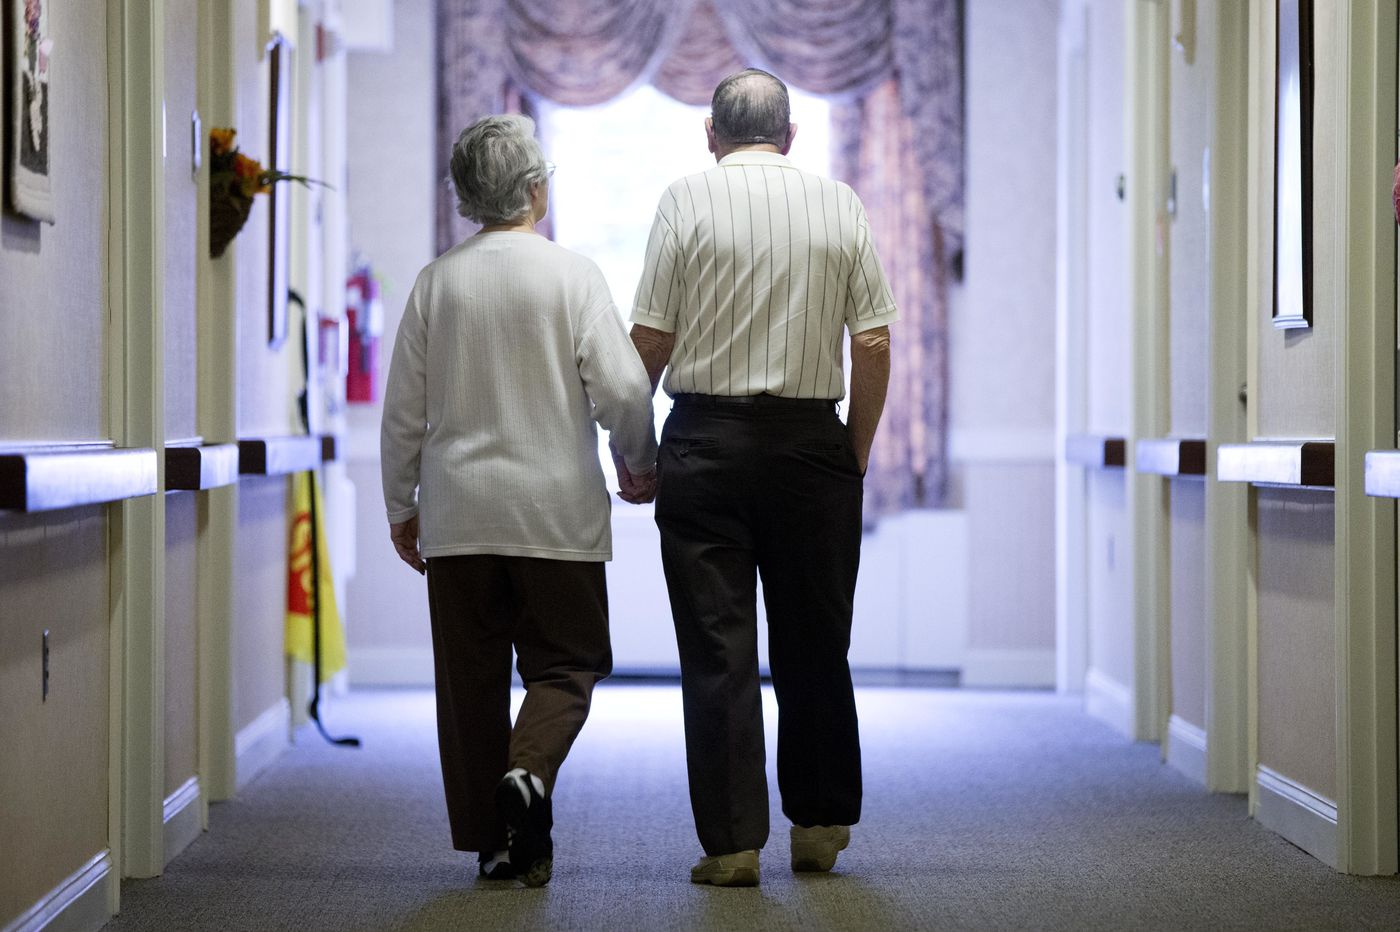 11 of nation's most troubled nursing homes are in Philadelphia region, newly published list shows